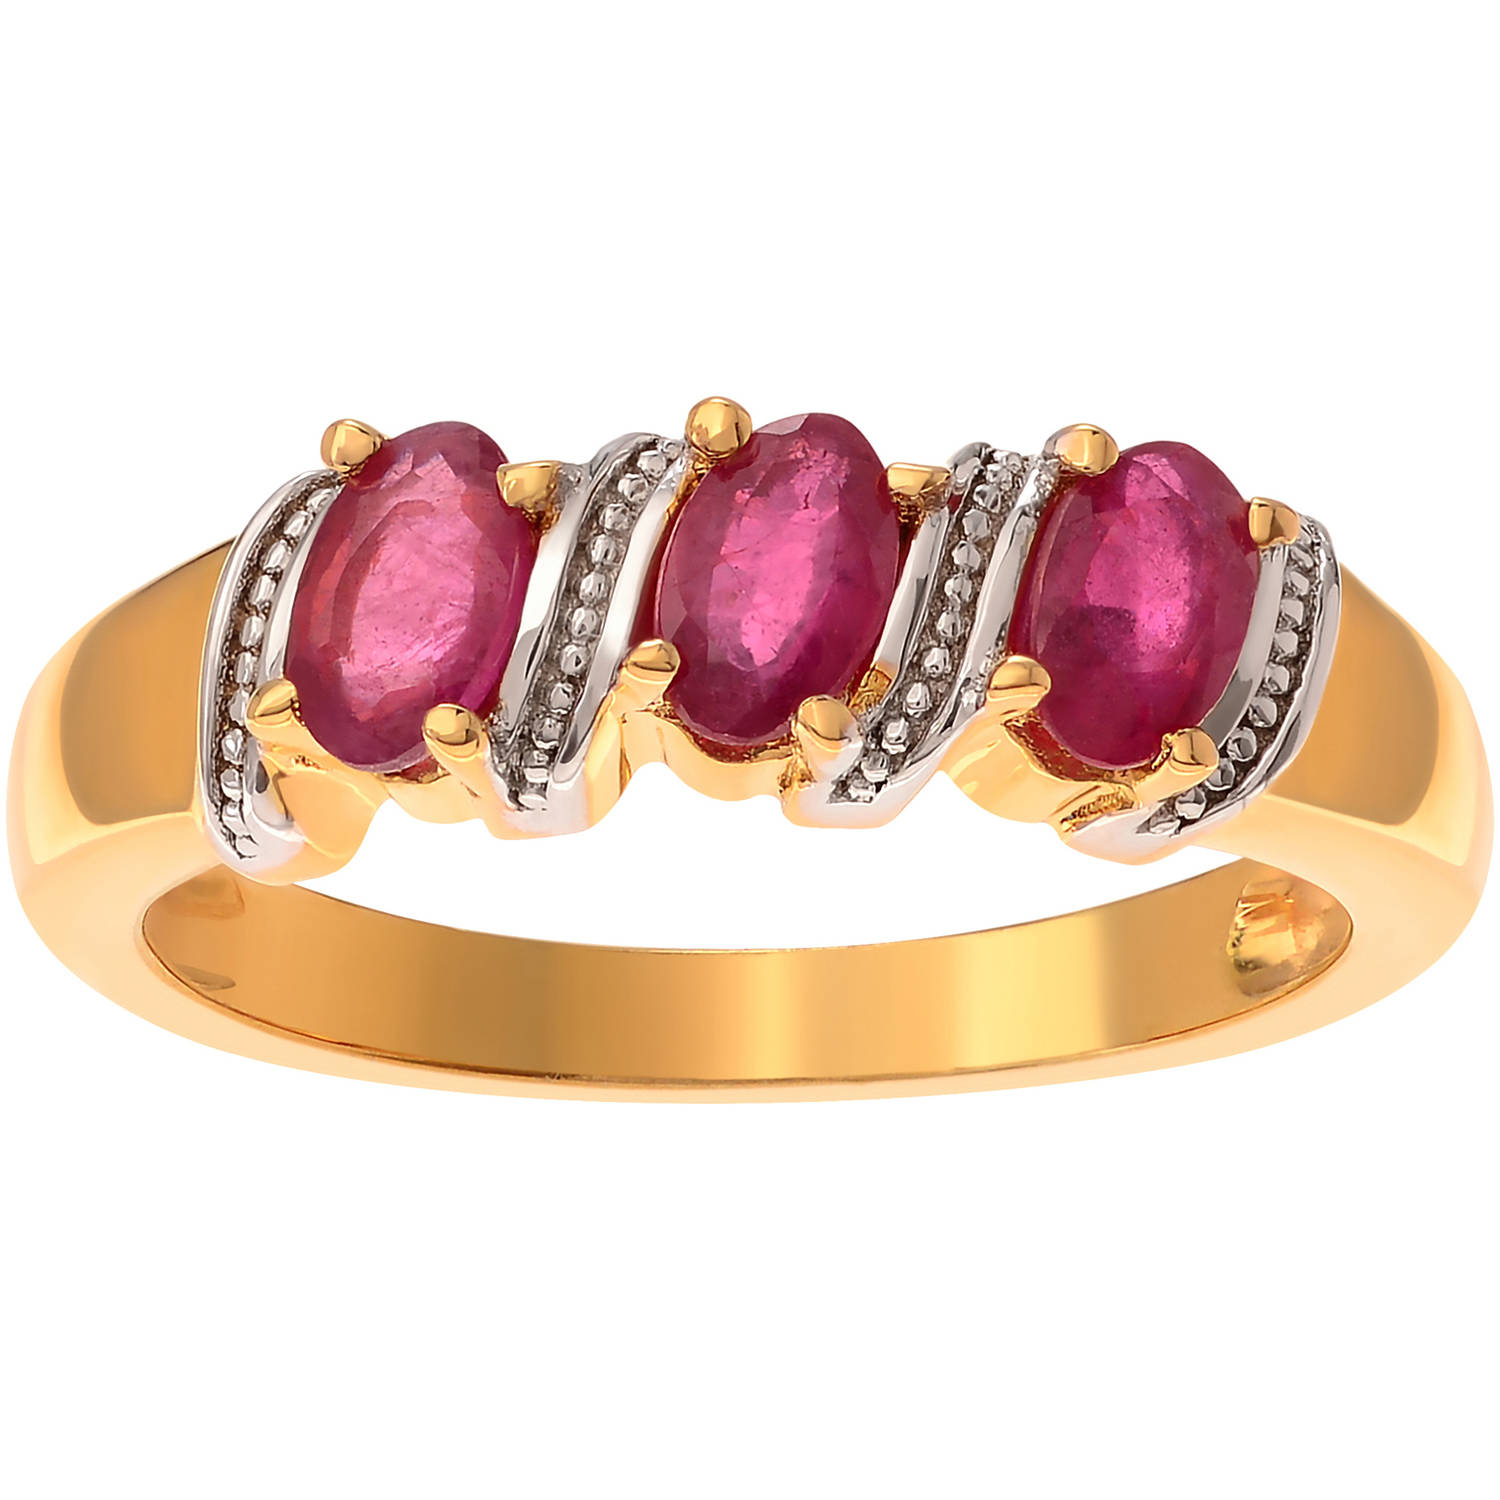 Brinley Co. Women's Ruby 14kt Gold over Sterling Silver Three-Stone Fashion Ring by KNS International